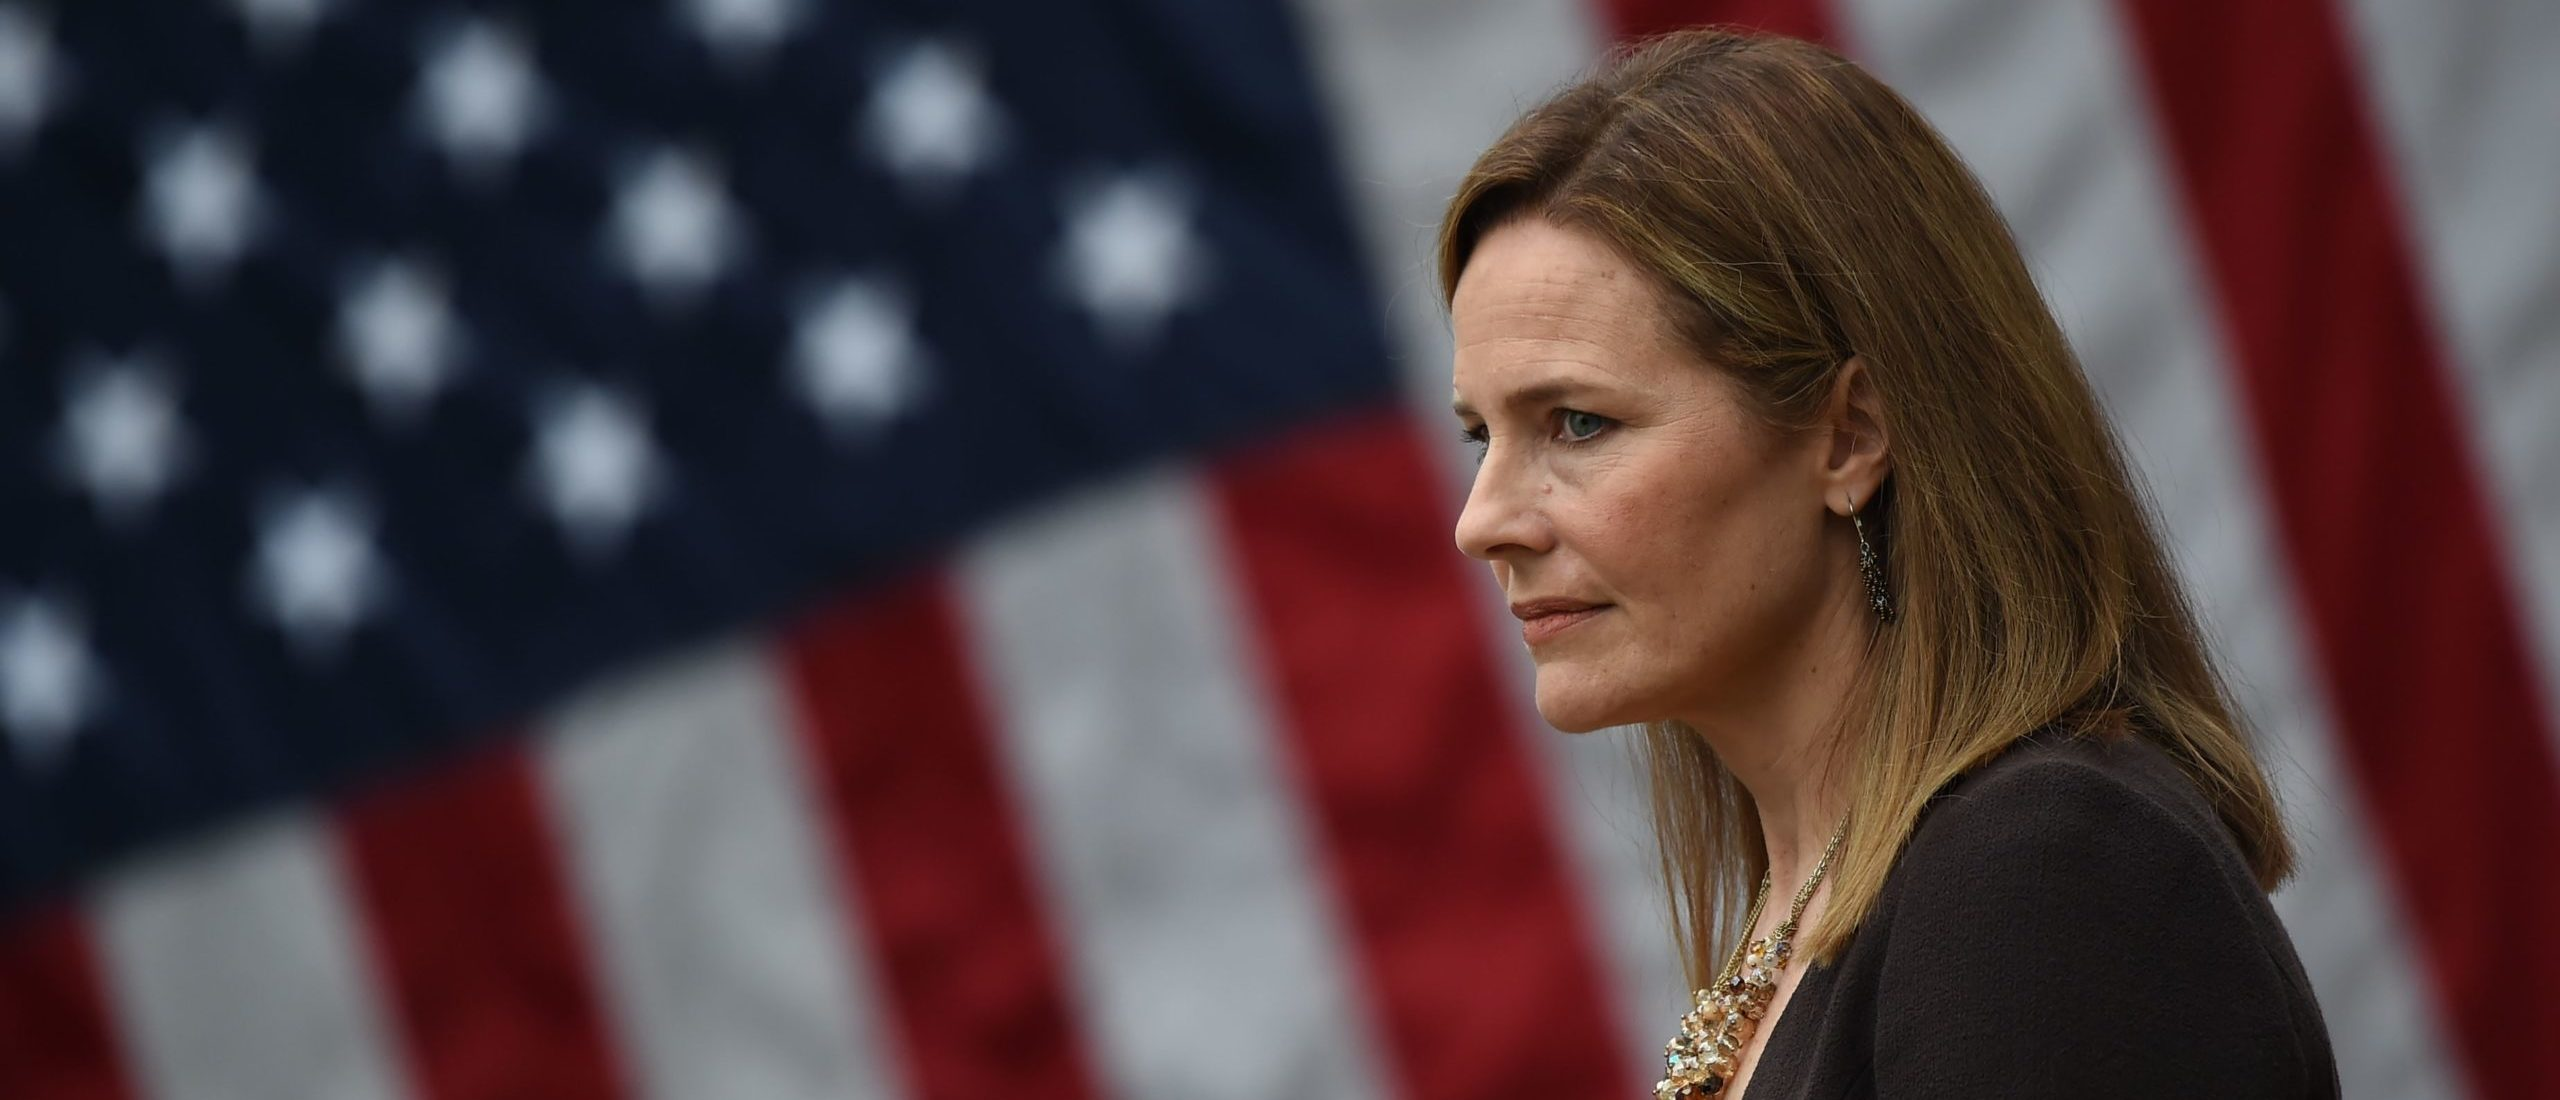 Judge Amy Coney Barrett is nominated to the US Supreme Court by President Donald Trump in the Rose Garden of the White House in Washington, DC on September 26, 2020. (Olivier Douliery/AFP via Getty Images)